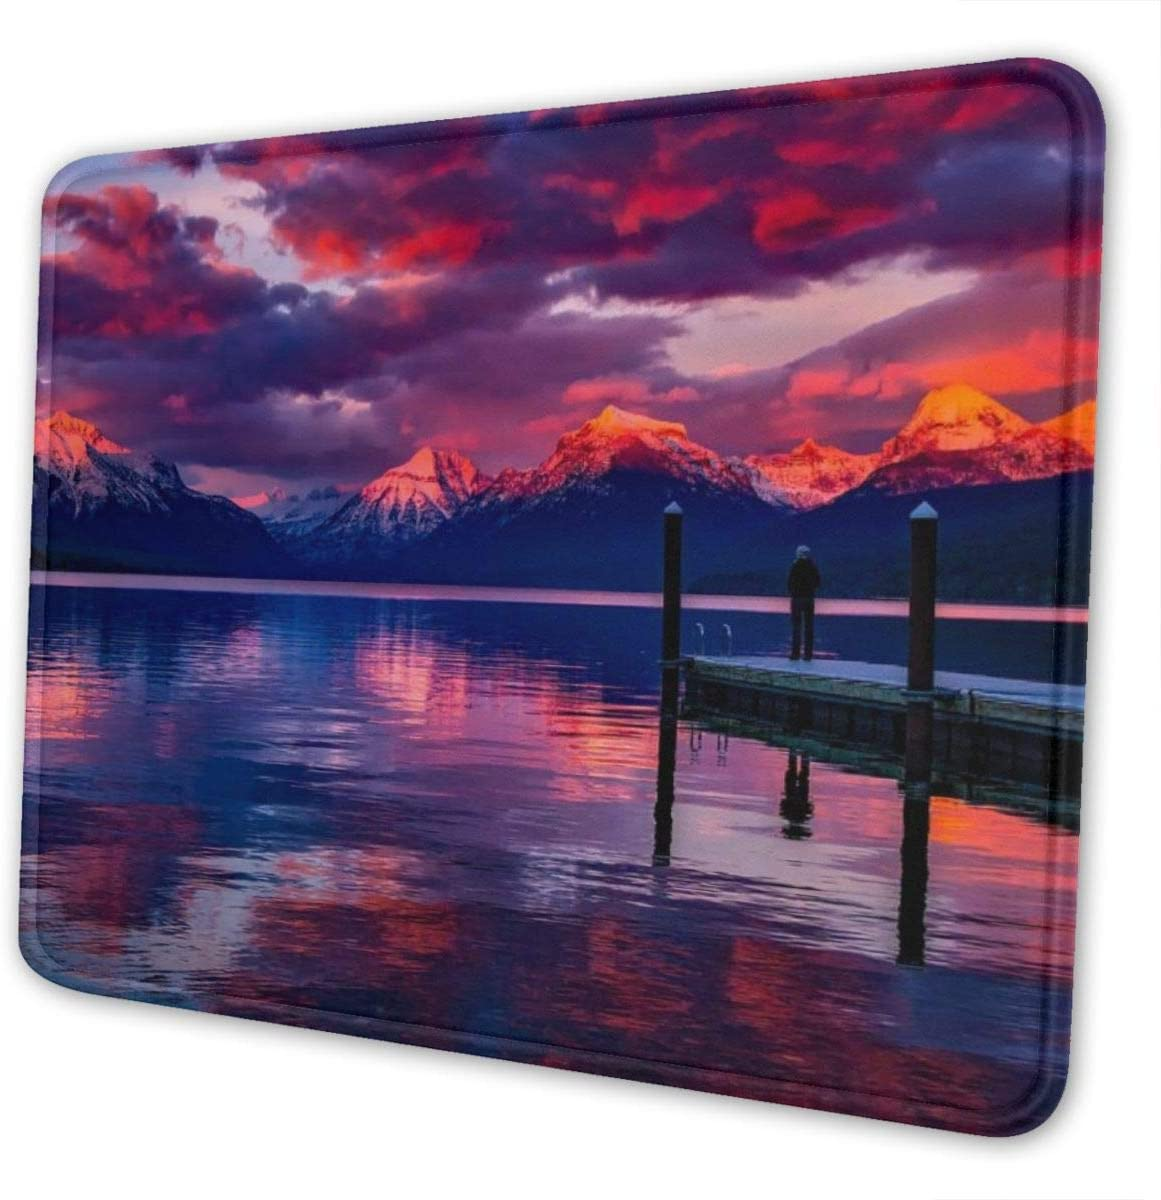 Mouse Pad, Lake McDonald Glacier National Park Red Sky Mouse Mat, Waterproof Office Mouse Pad